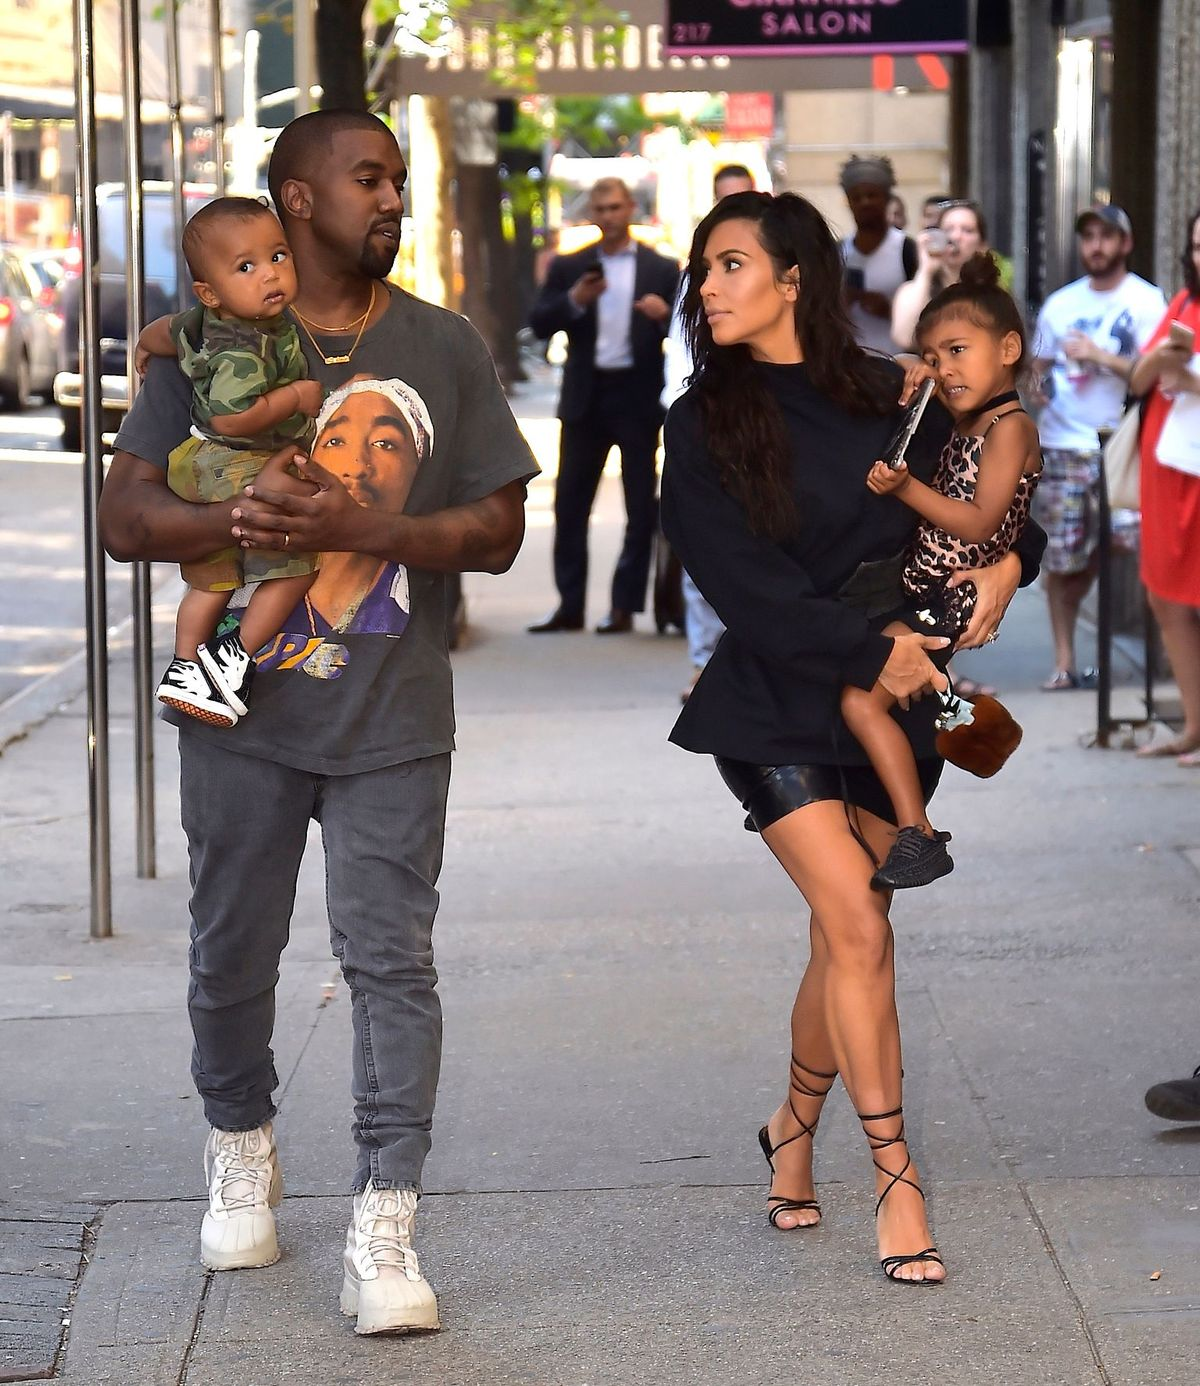 Kim Kardashian and Kanye West with North West and Saint West at the Upper East Side on August 29, 2016 | Photo: Getty Images